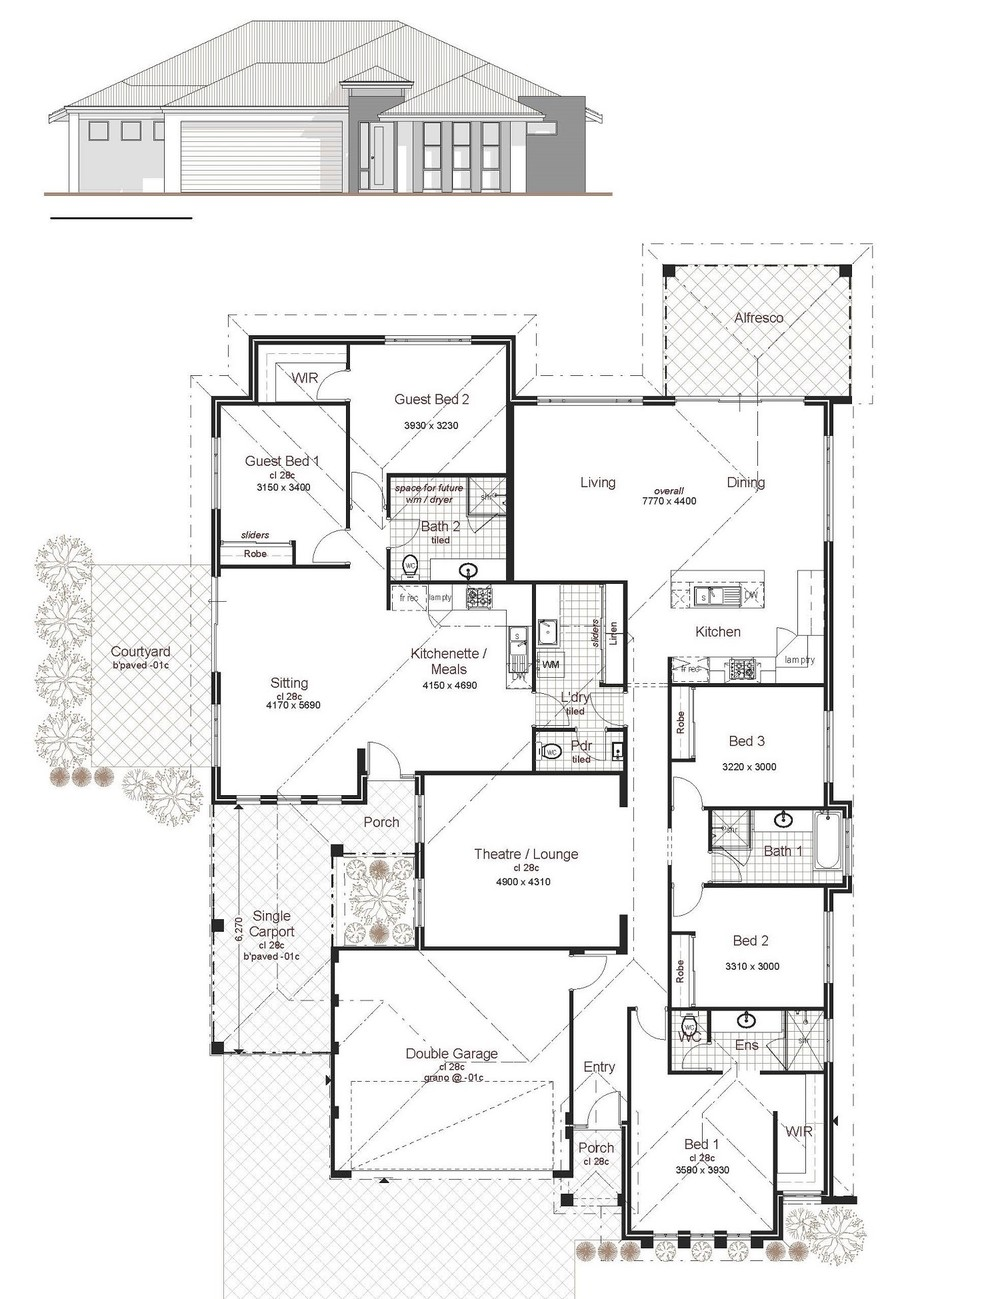 Wonderful 207 Dual Living Custom Design Perth Two Family